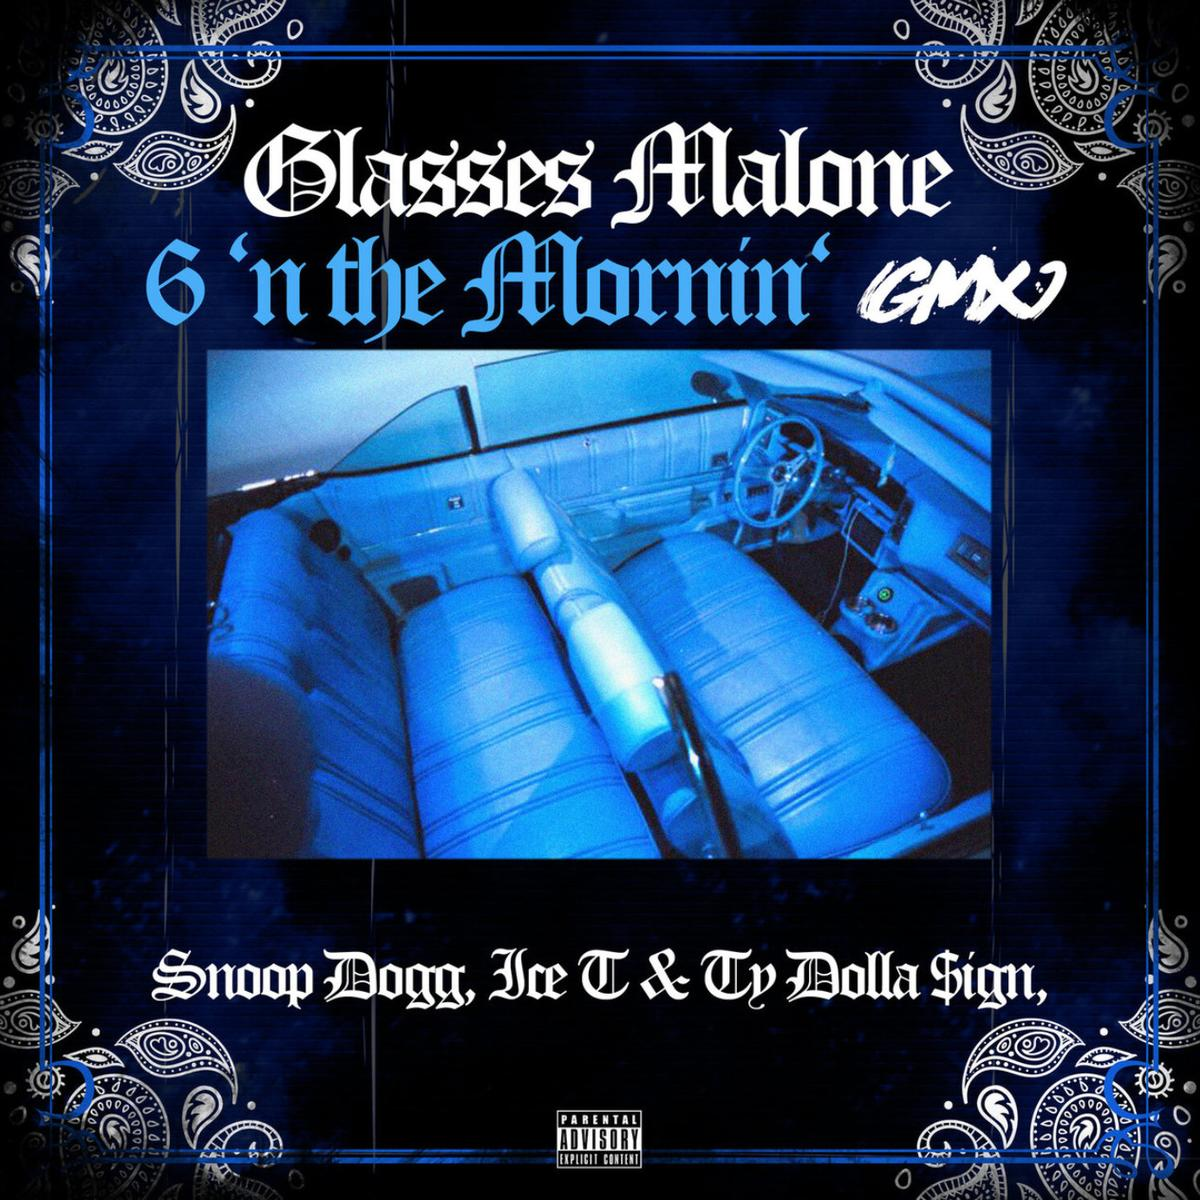 DOWNLOAD MP3: Glasses Malone Ft. Snoop Dogg, Ice T & Ty Dolla $ign – 6 N The Mornin'